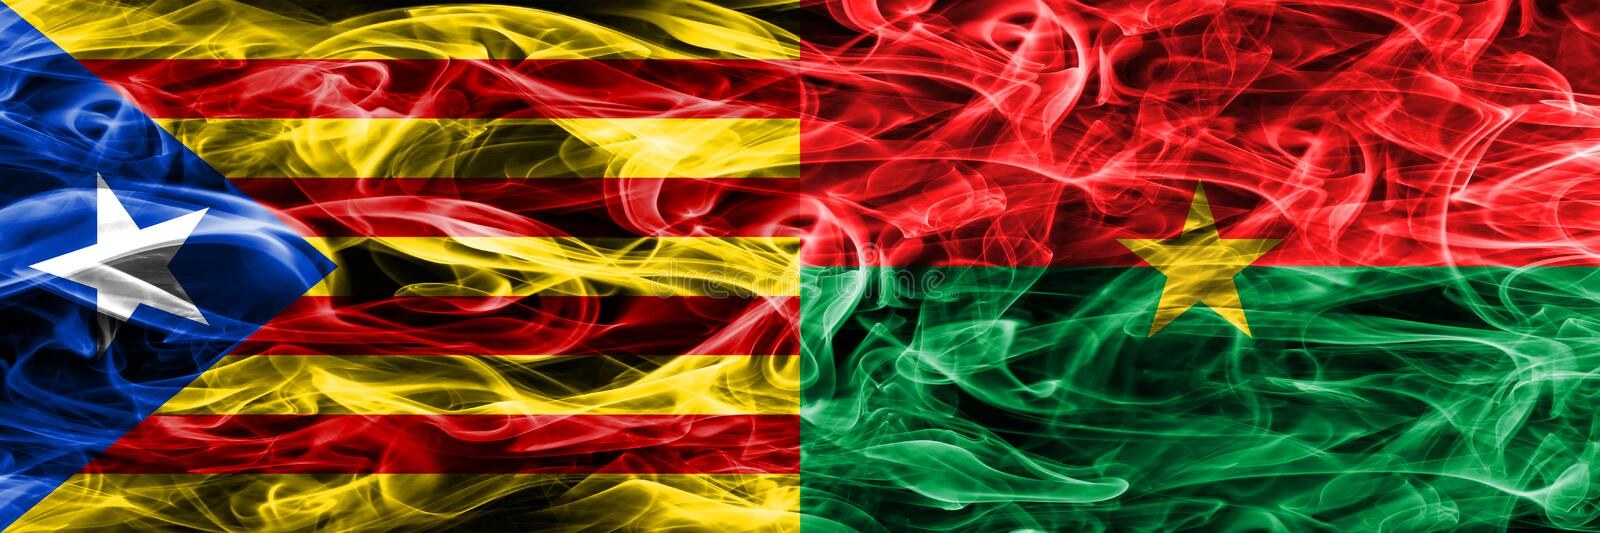 Catalonia vs Burkina Faso copy smoke flags placed side by side. Thick colored silky smoke flags of Catalan and Burkina Faso copy.  royalty free illustration